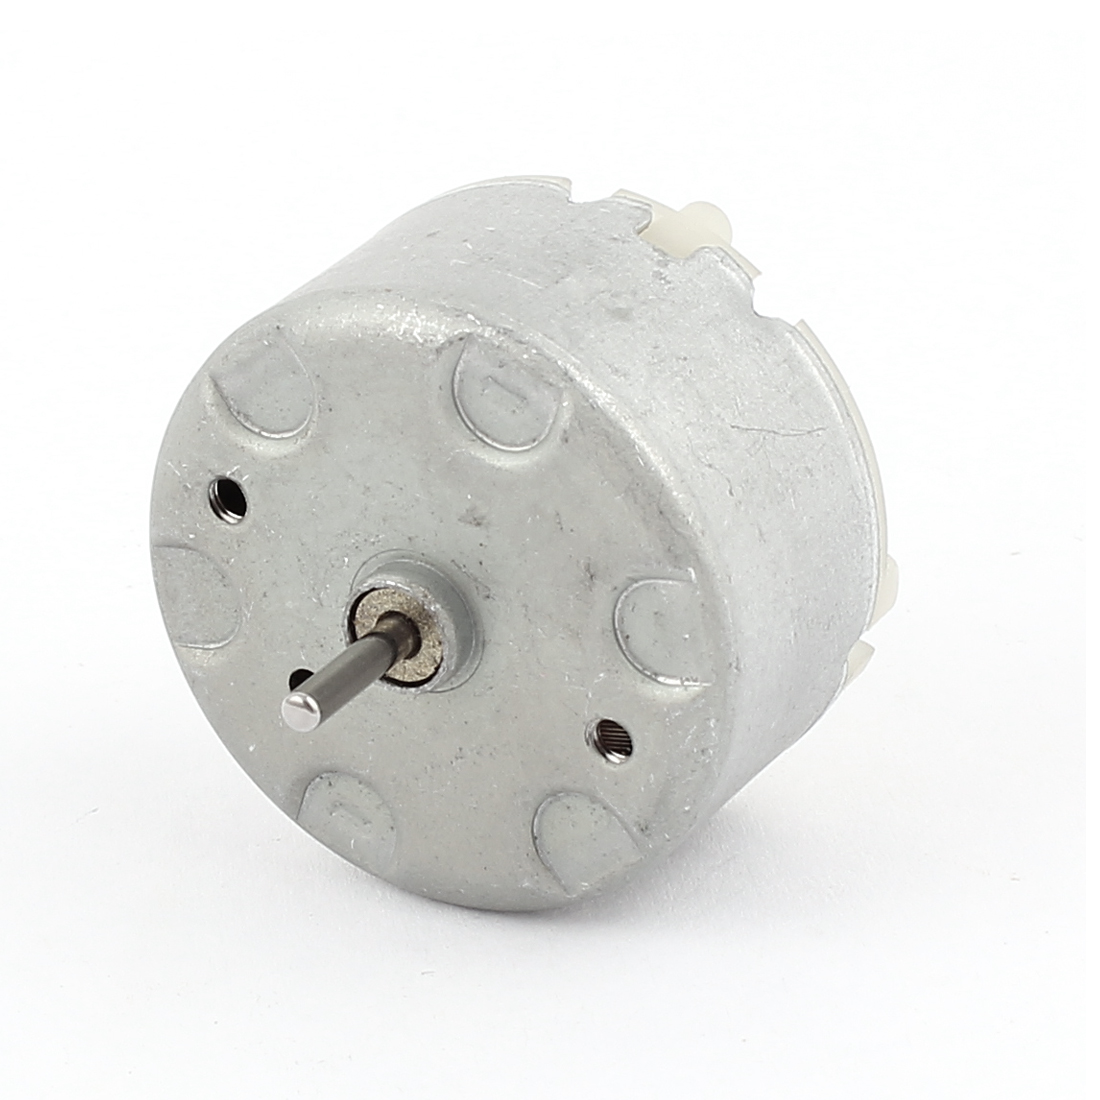 DC 3-12V 8400RPM Output Speed High Torque Electric Motor for Solar Water Heater